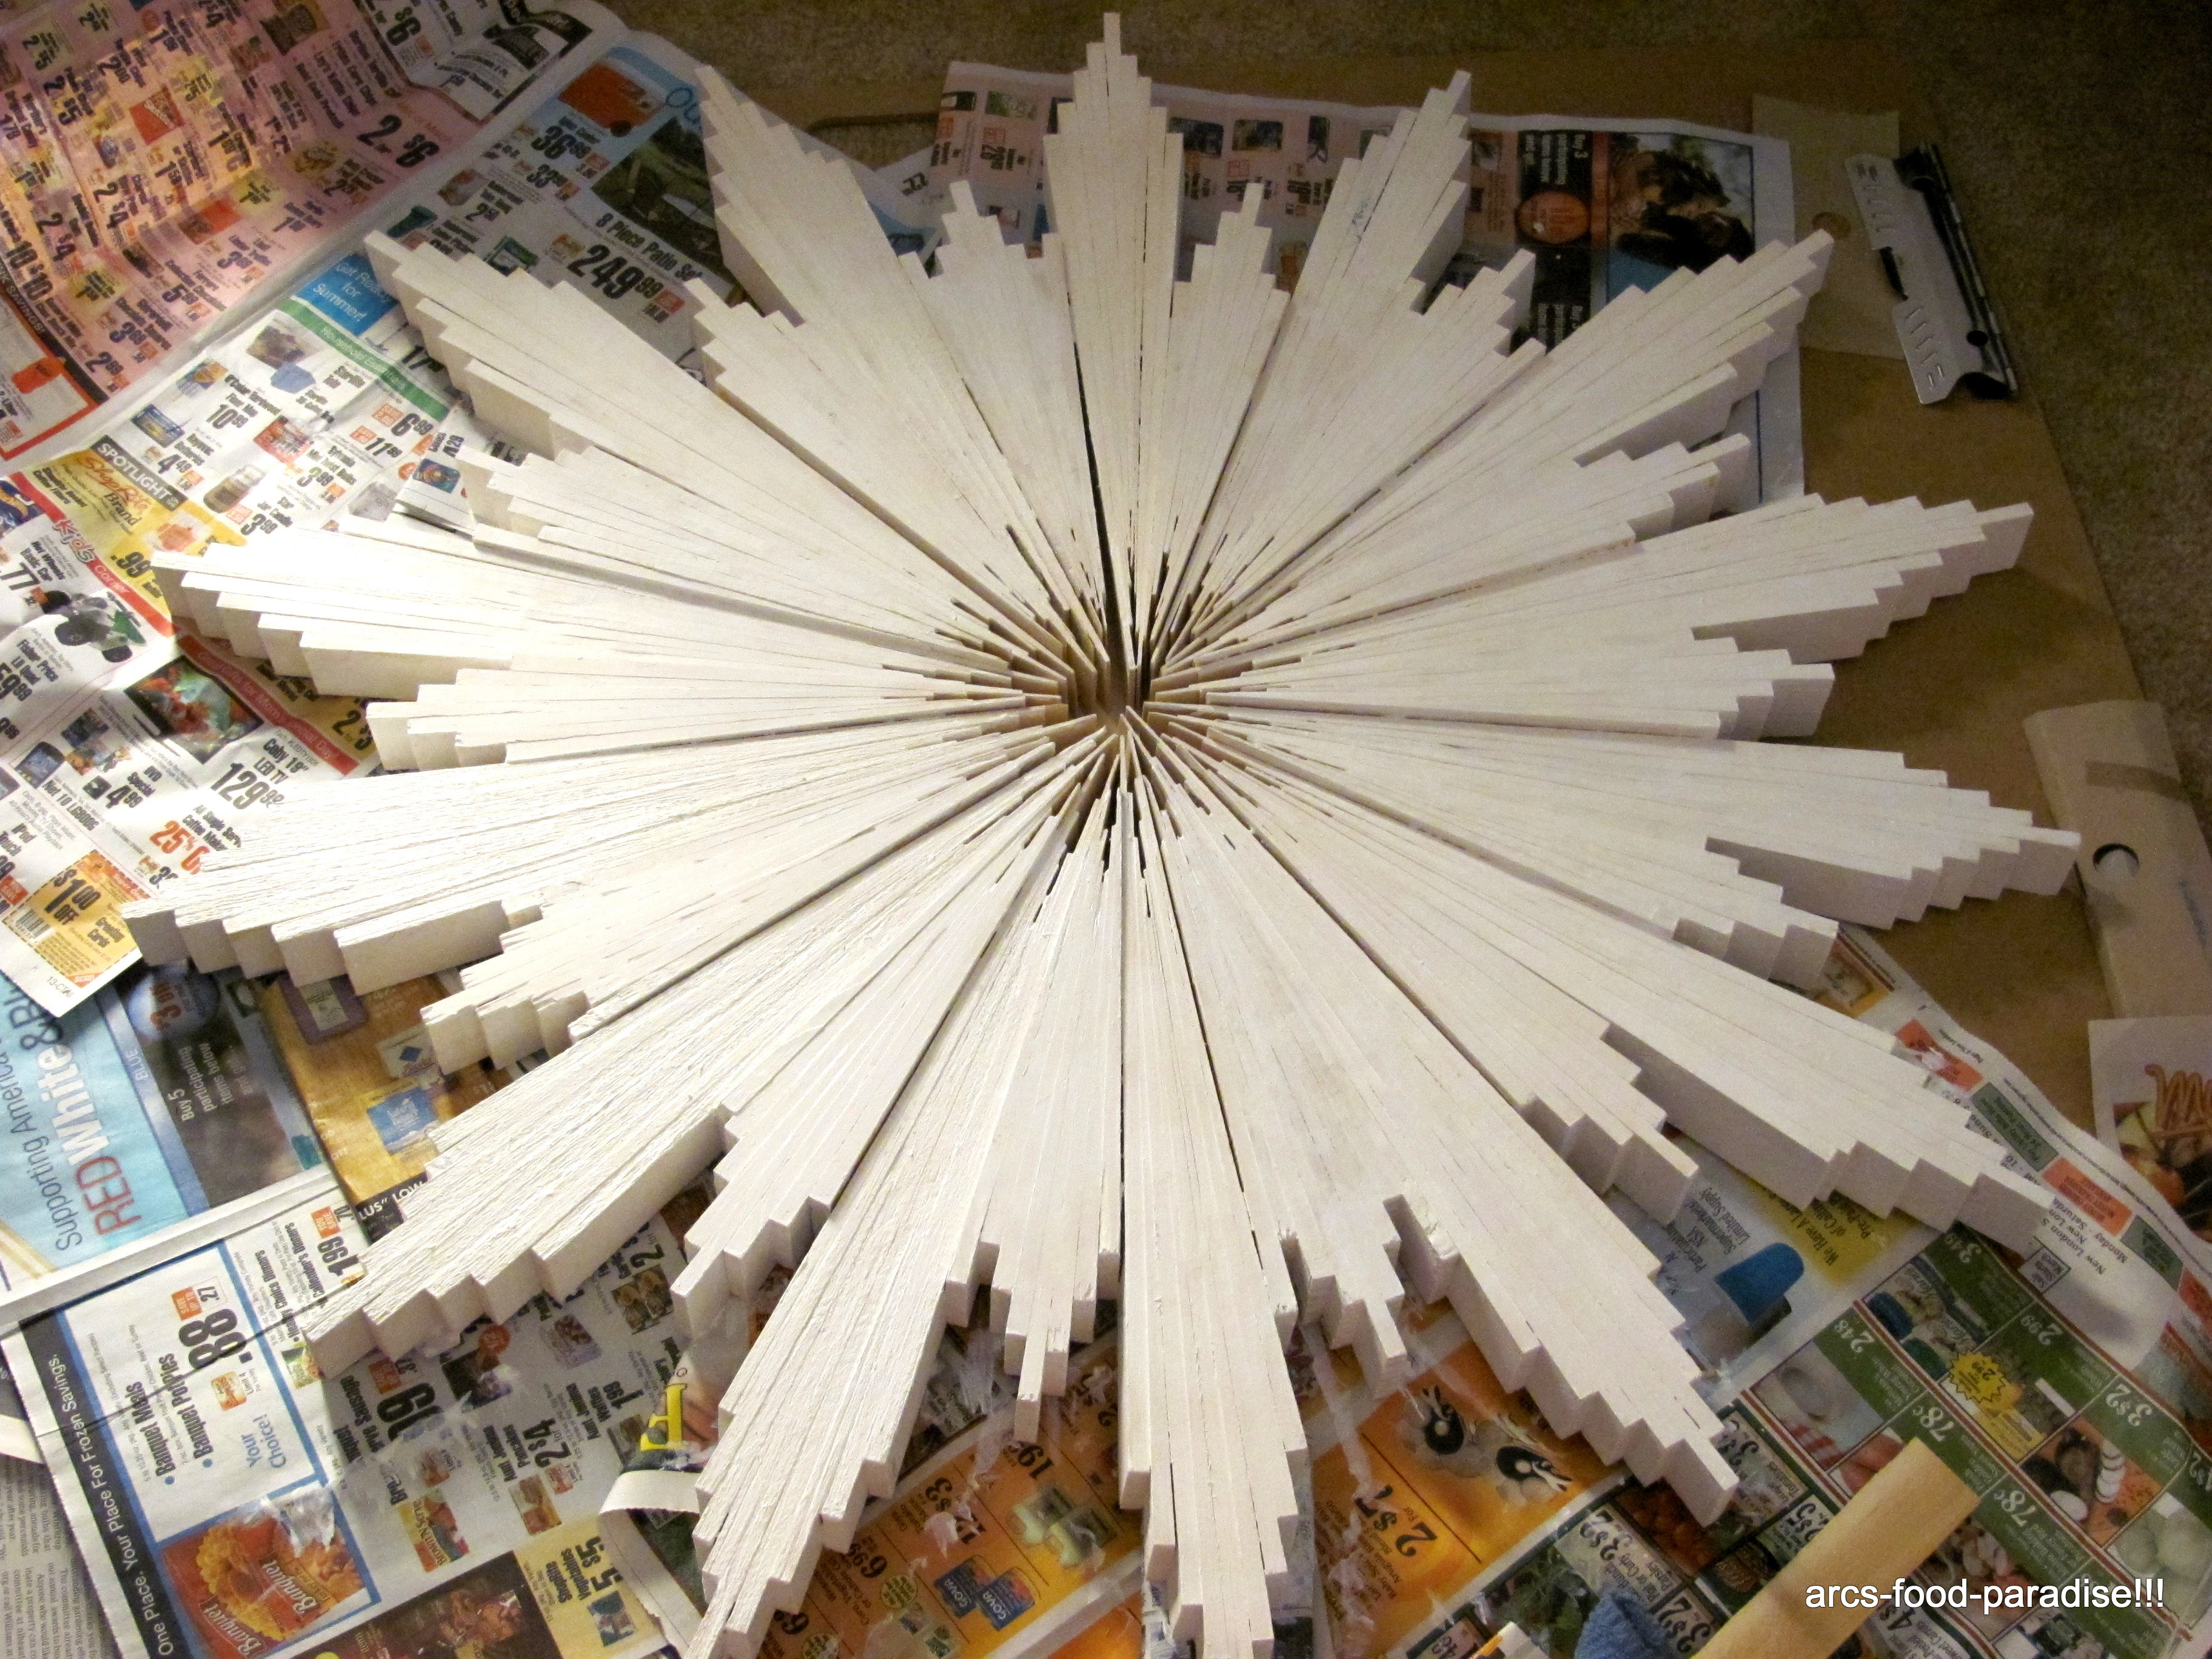 Sunburst Mirror (with Wood Shims) - DIY | The Flavor Nook!